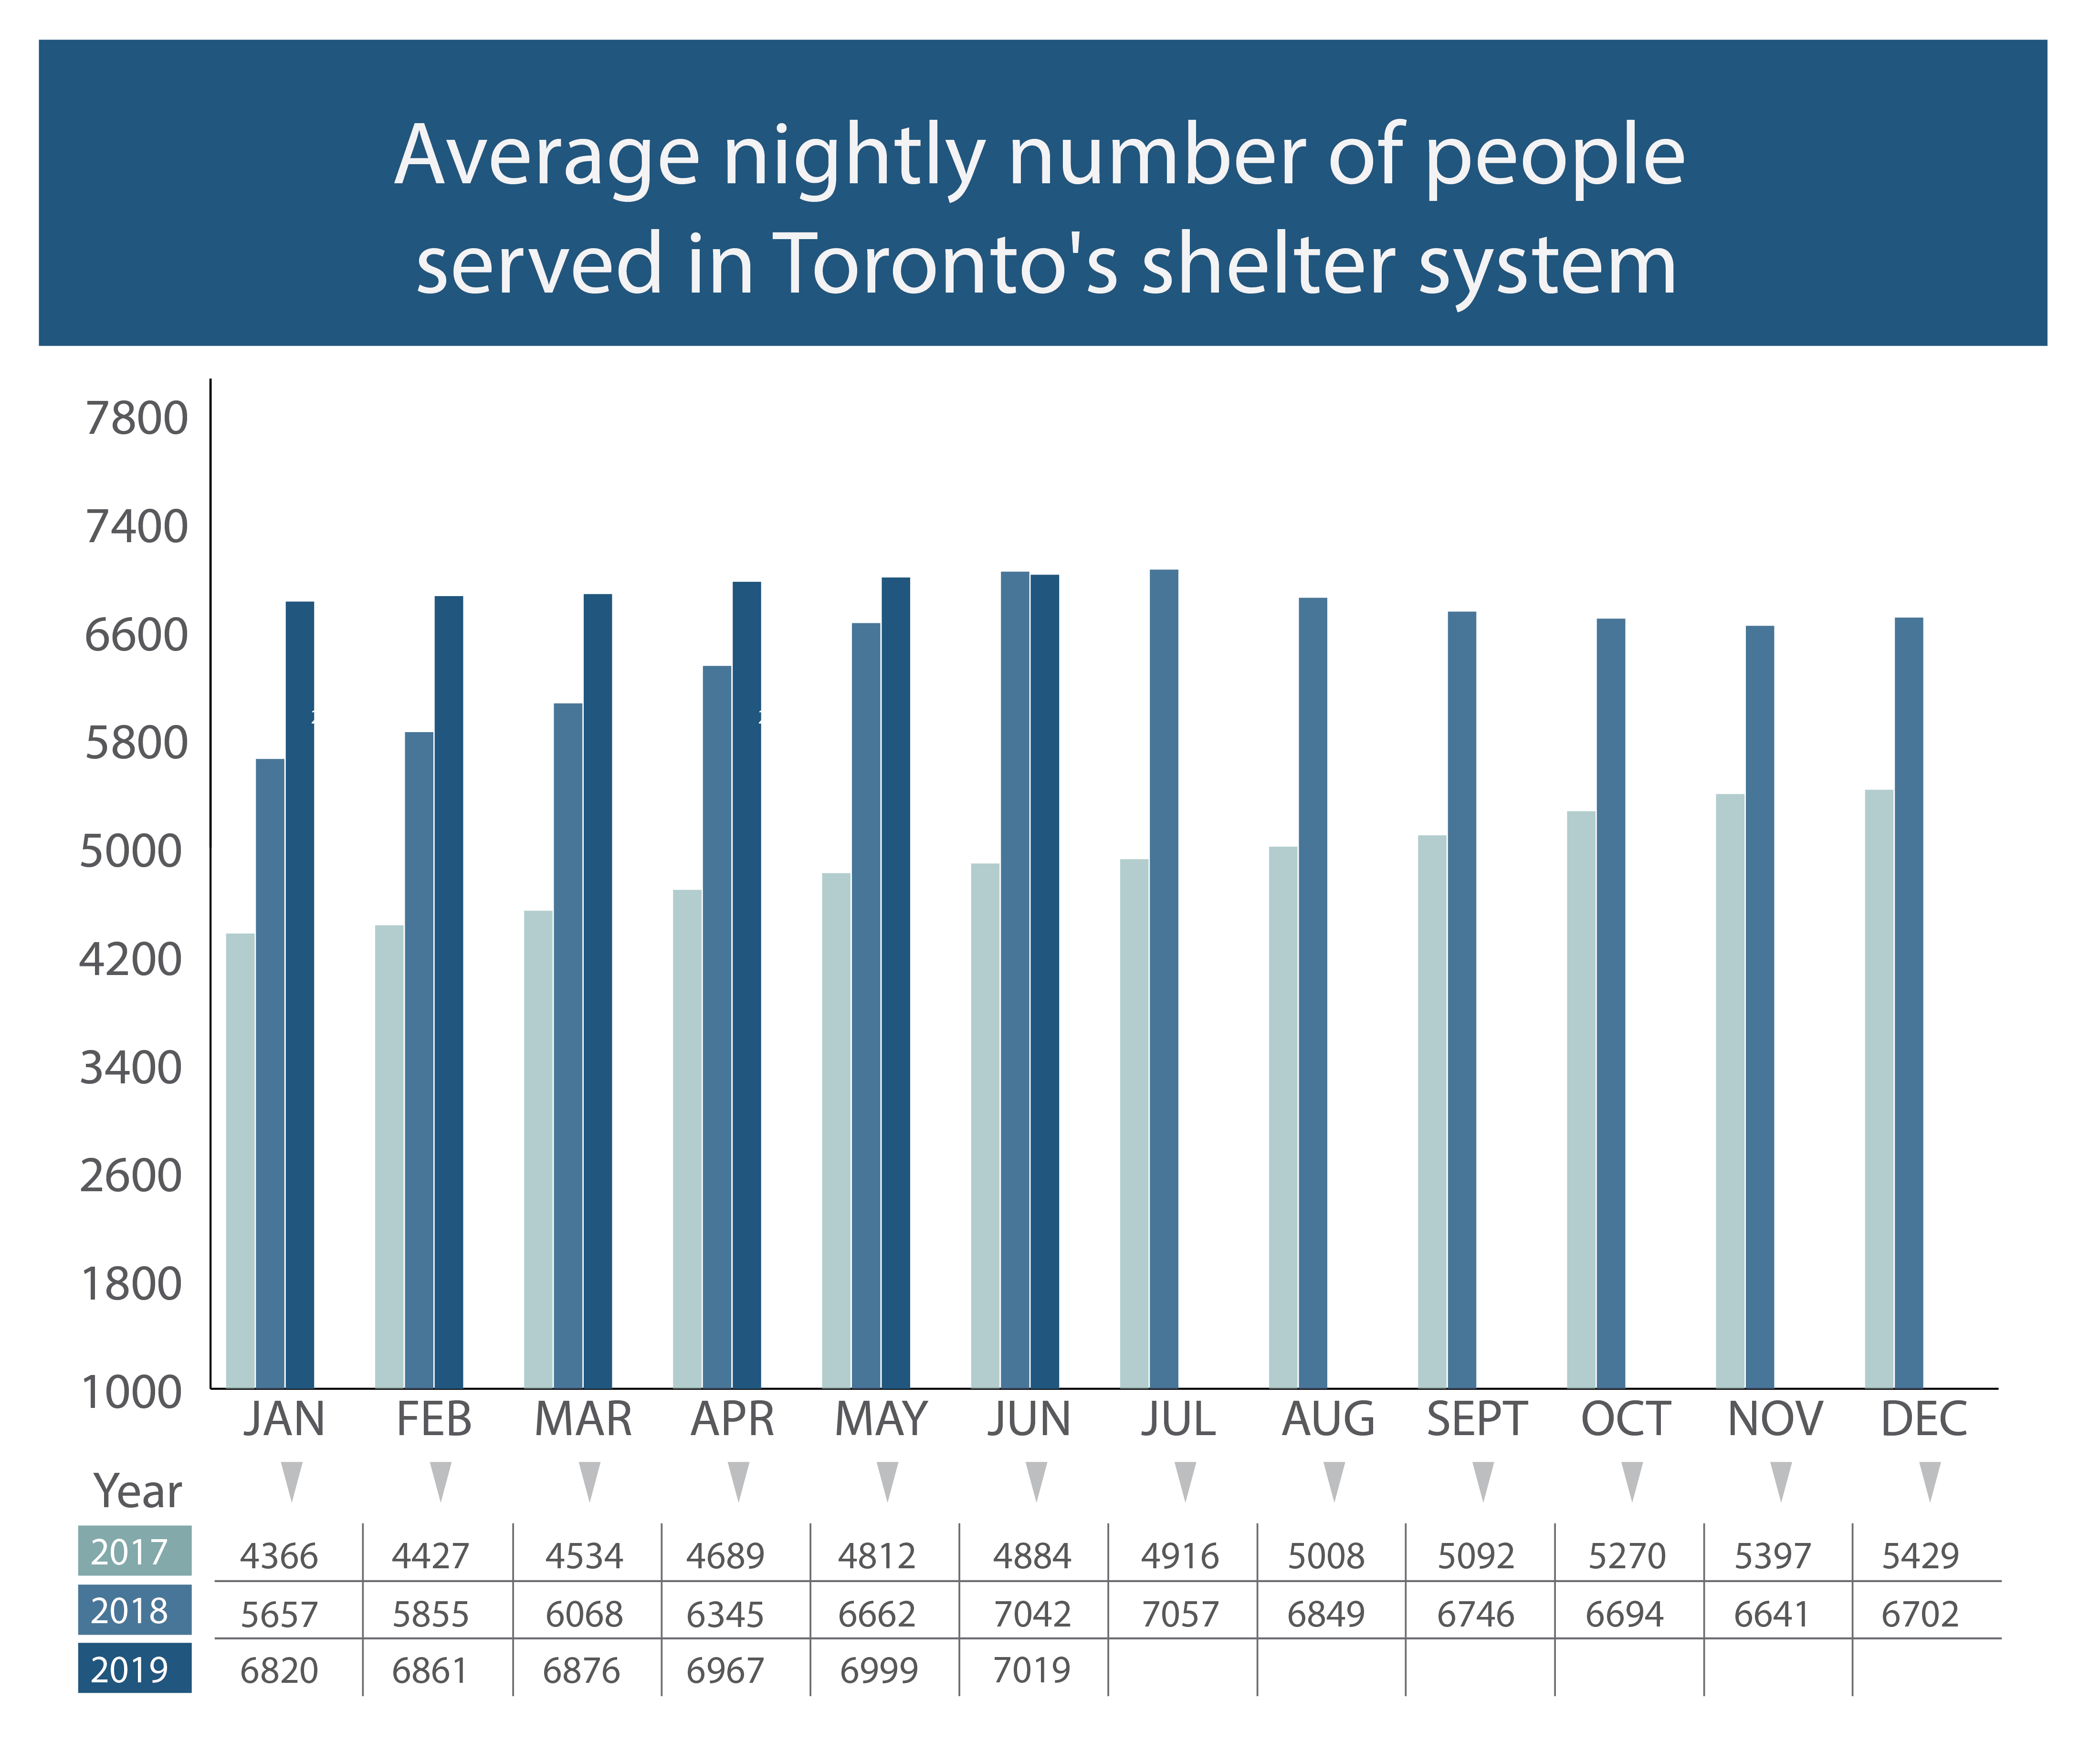 Vertical bar charts illustrating average monthly total of y number of people served in shelter system., year over year 2017 to 2019